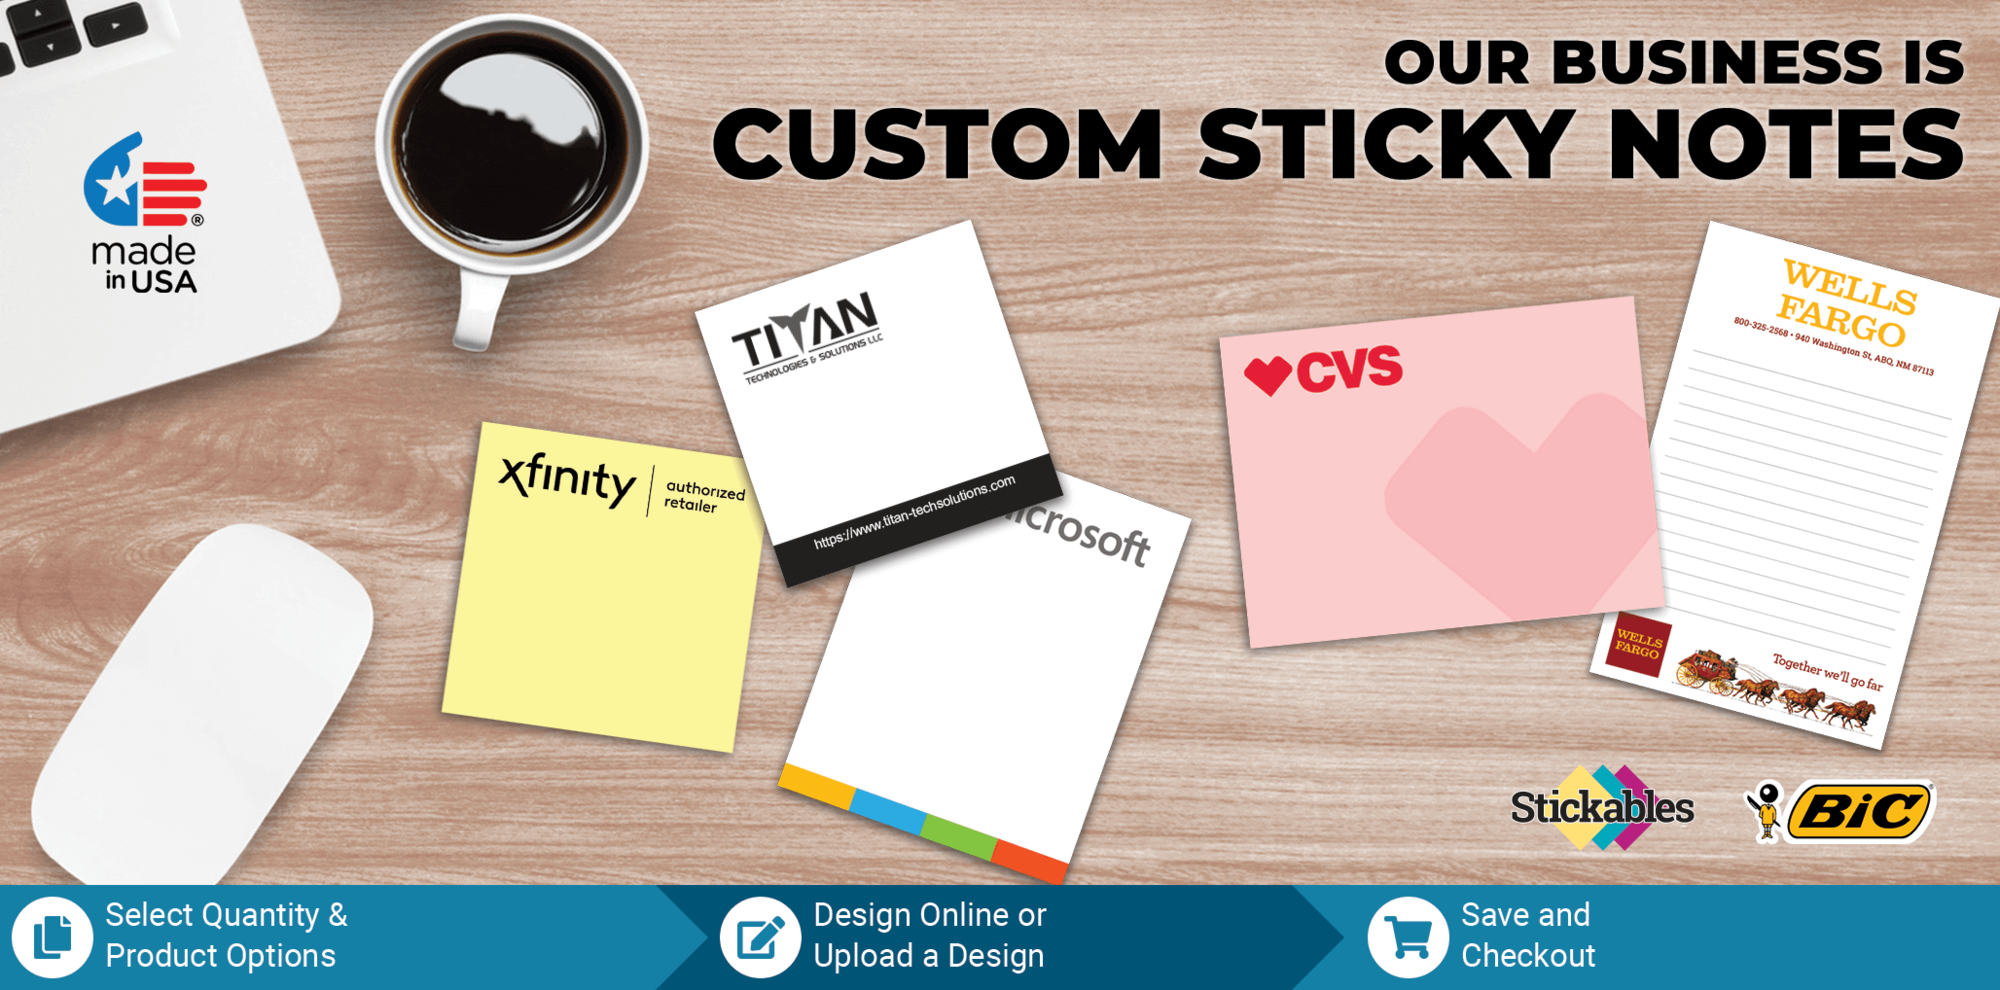 https://printpps.com/images/products_gallery_images/Custom-Sticky-Notes_Product-Page-Banner38.png